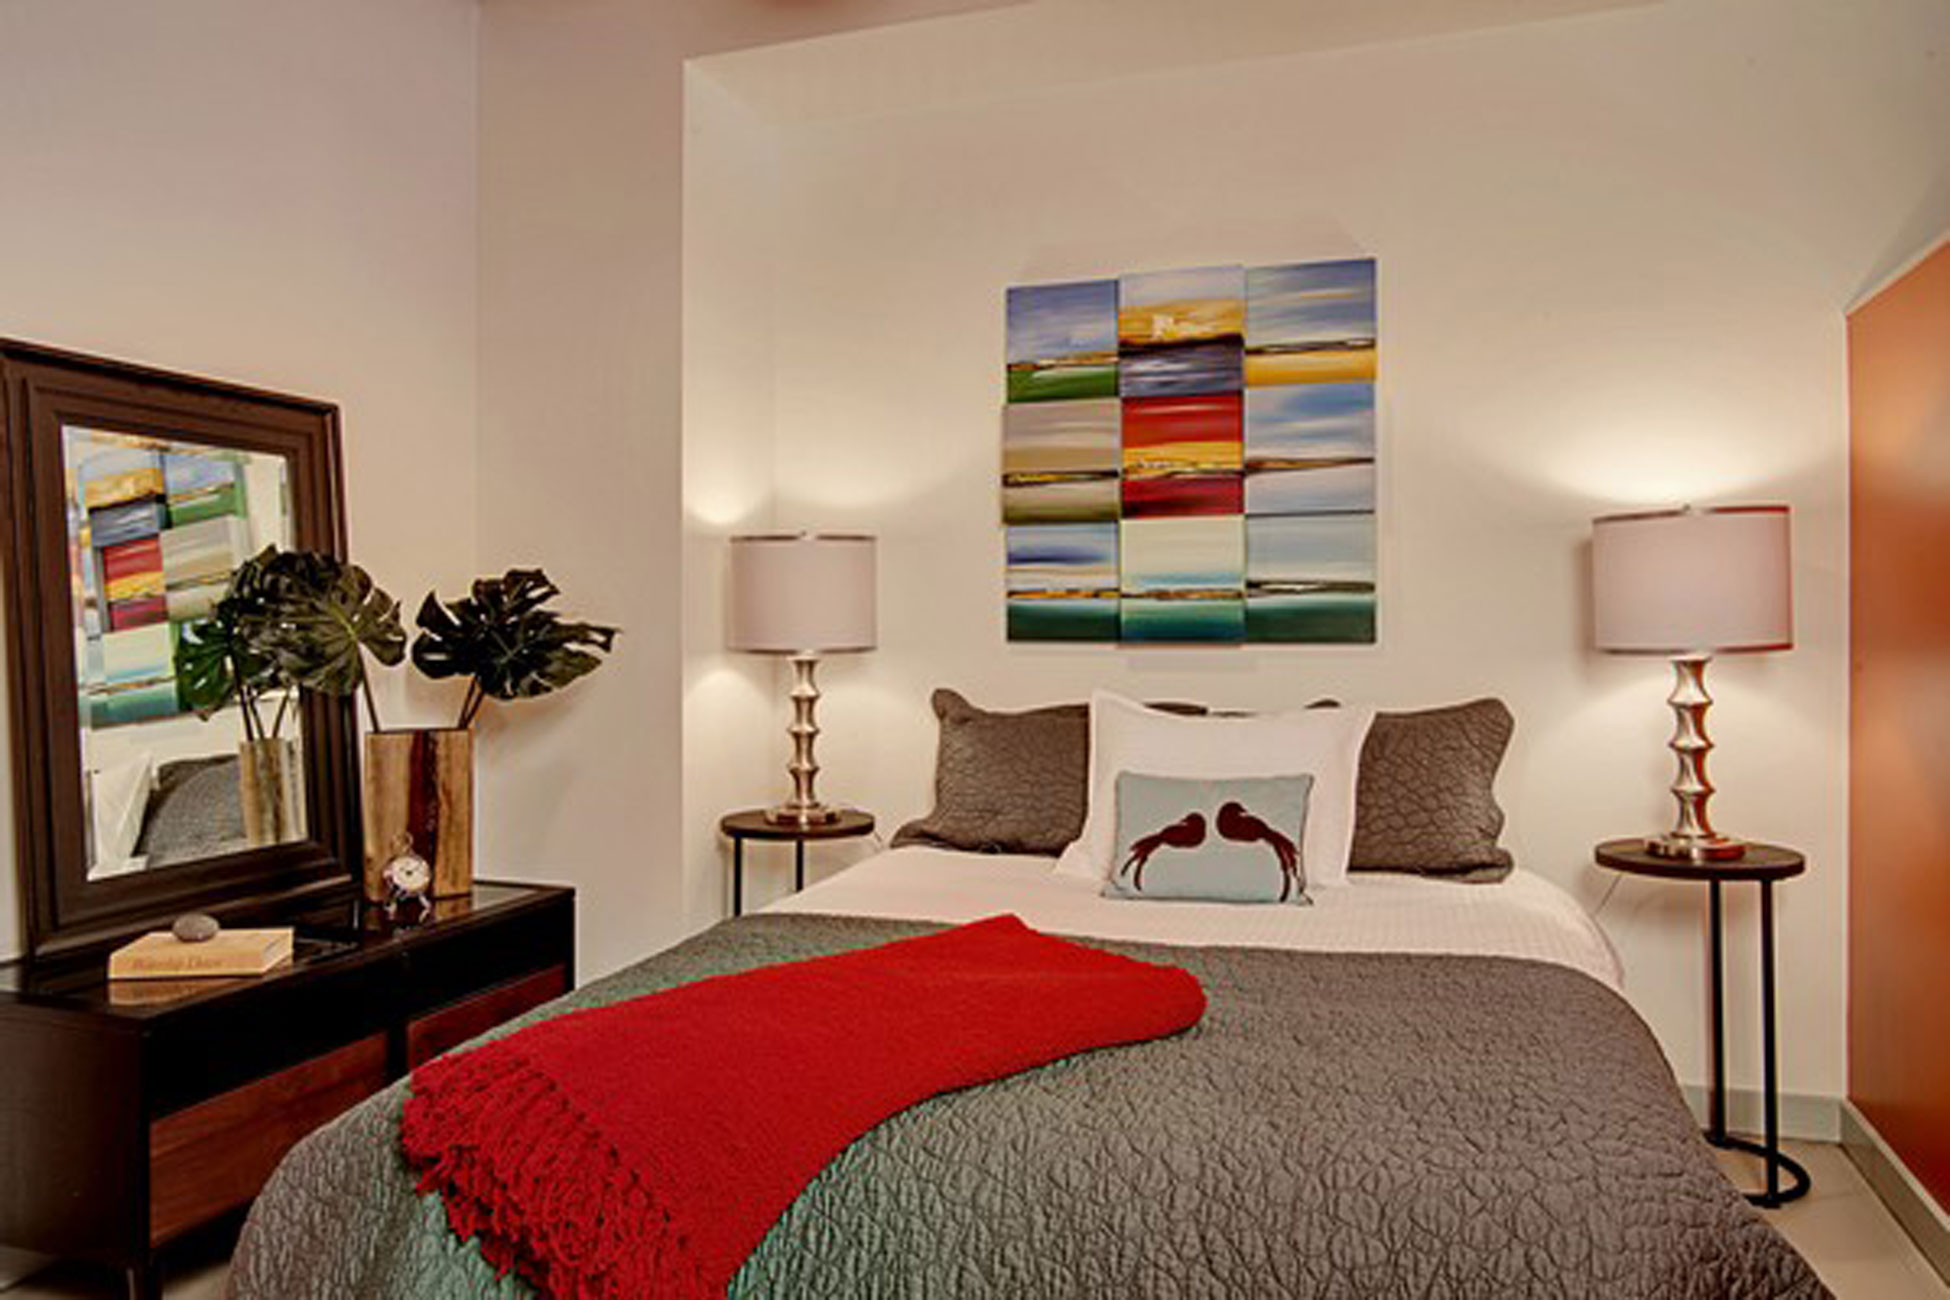 A little apartment bedroom ideas midcityeast for Living room ideas for a one bedroom apartment